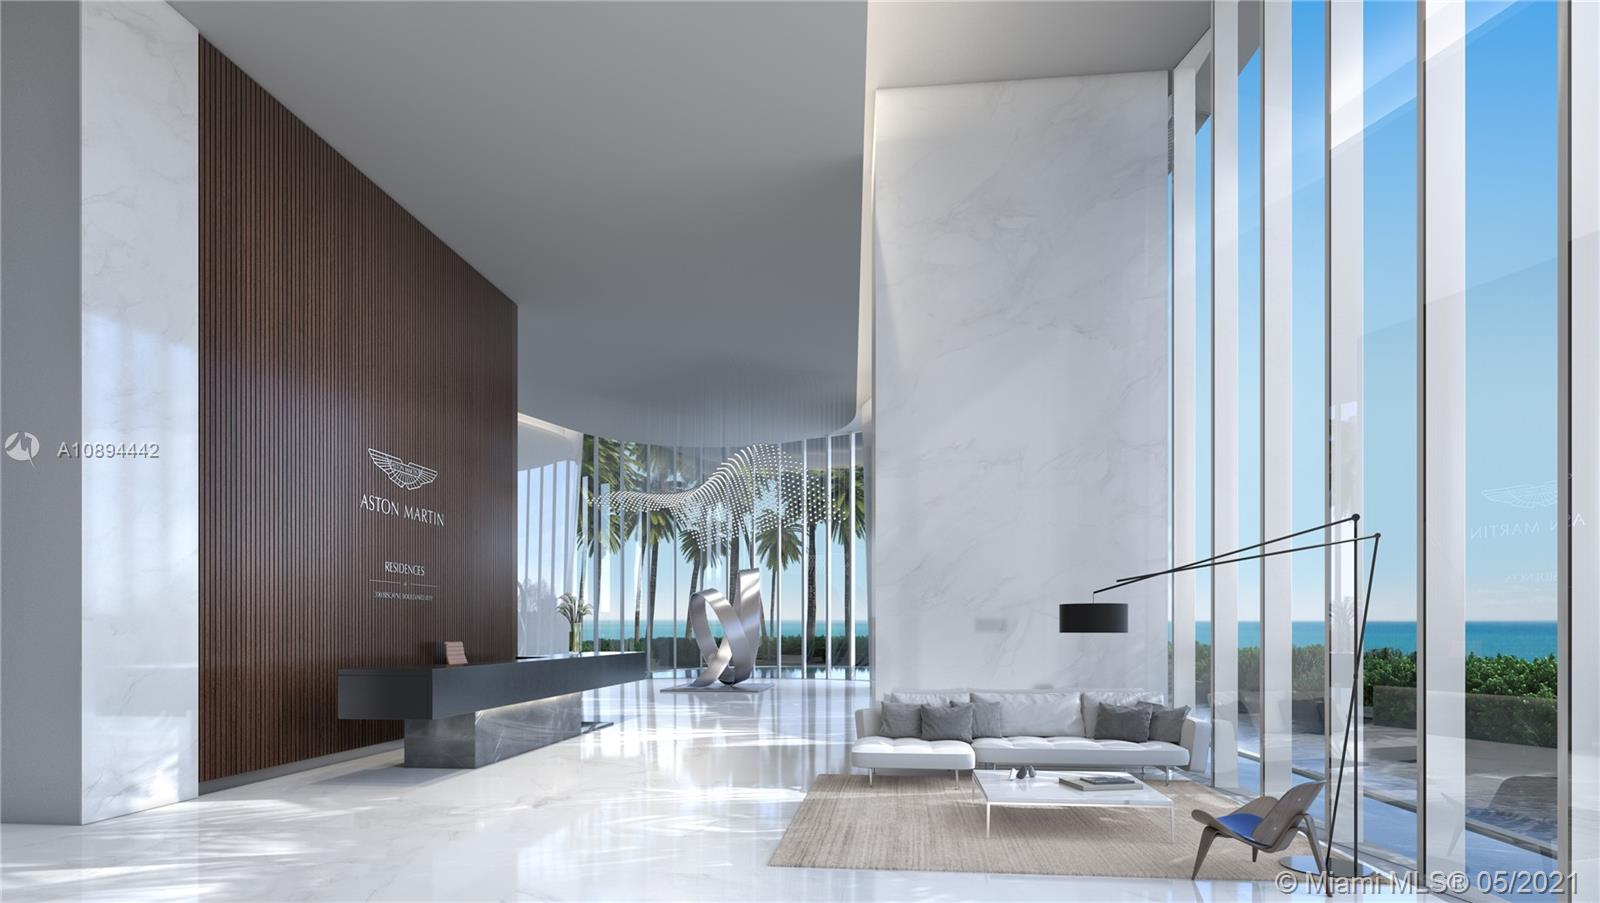 Your home in the sky. Construction is well underway. Aston Martin's first exclusively branded residential high rise with an estimated delivery in 2022. In this first exclusive development partnership with Aston Martin, the interiors are inspired by the brand's 105 year history, DNA and esthetic through subtle details and craftsmanship while taking into consideration Miami's tropical and exciting environment. The residential only tower will be over 800' as the tallest condominium tower south of NYC with 391 units, over 42,000 sq ft of sky amenities and timeless finishes. EXCEPTIONAL OPPORTUNITY...85% SELLER FINANCING AVAILABLE.